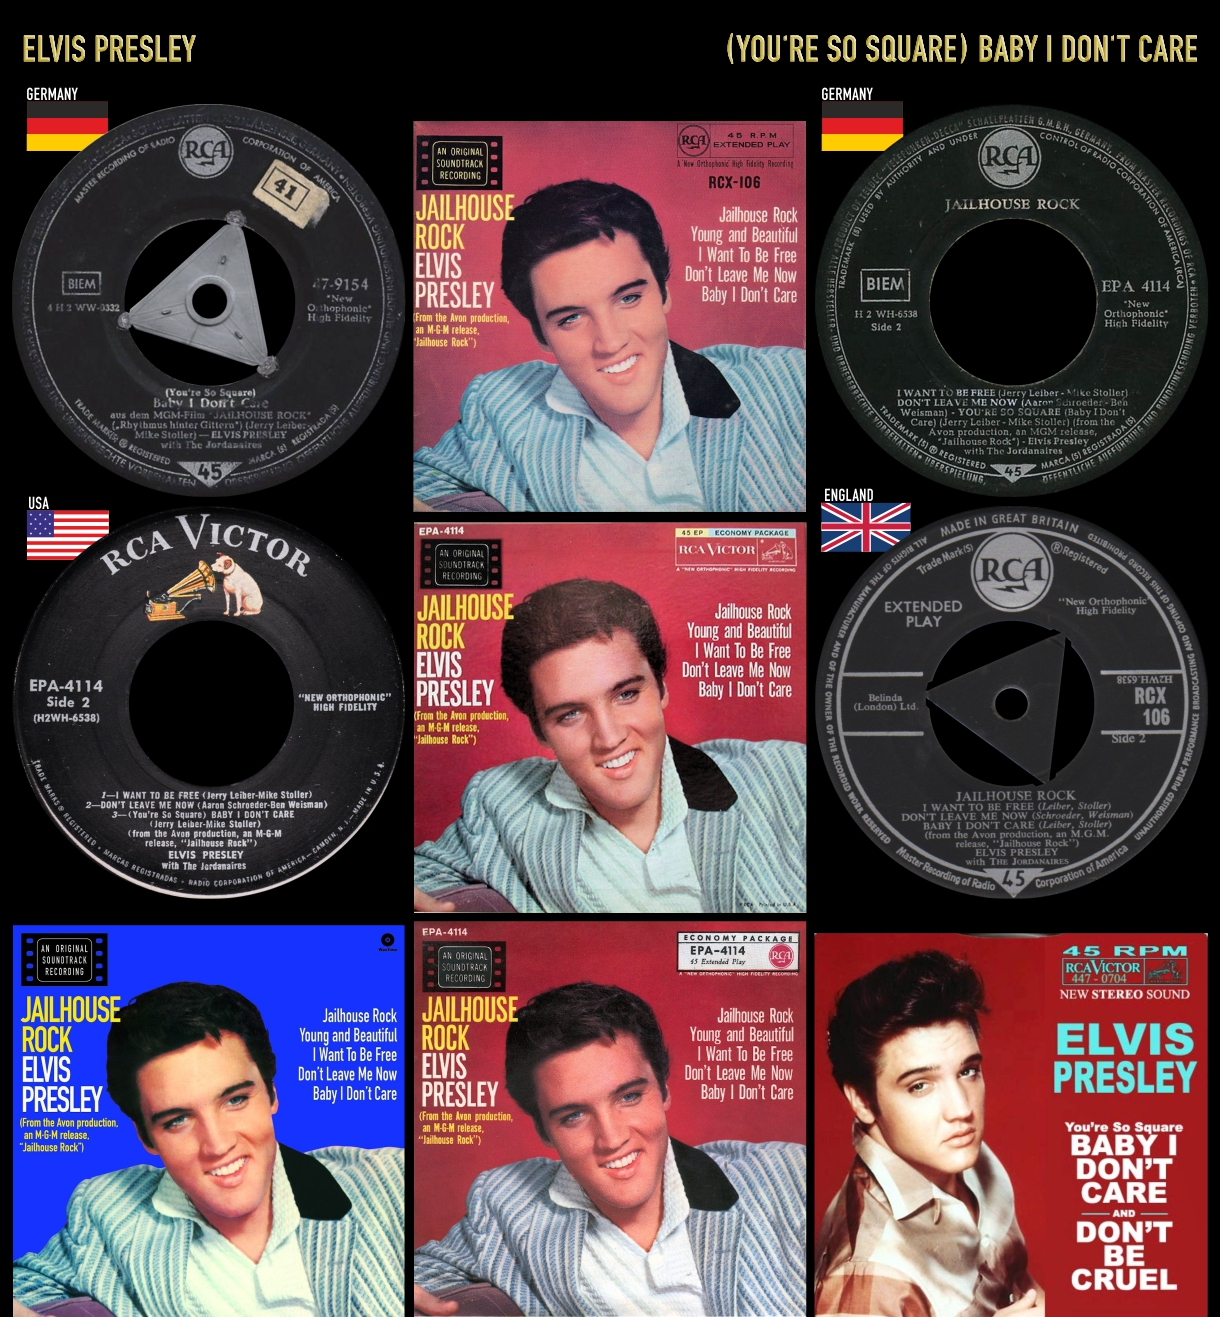 580118_Elvis Presley_Baby I Don't Care_#2